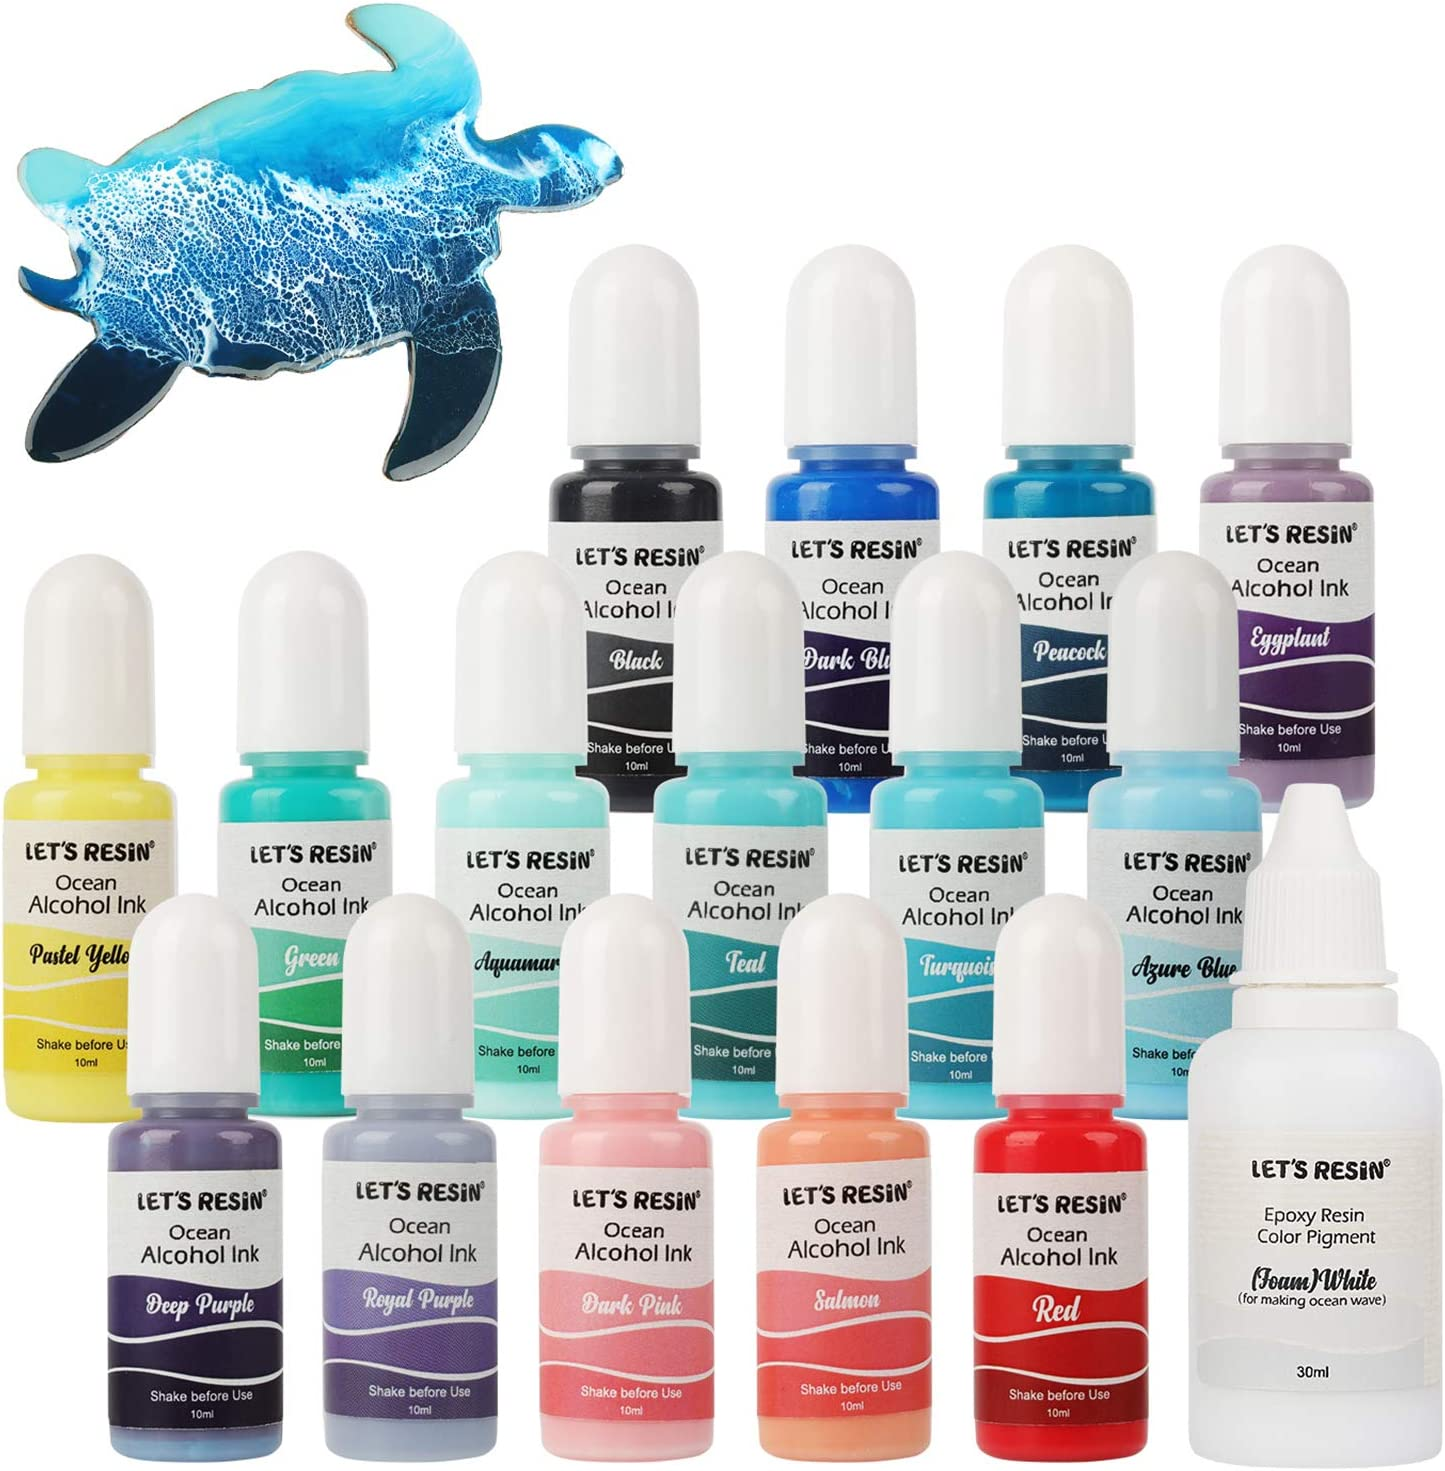 Alcohol Ink Set- LET'S RESIN Highly Saturated Ocean Alcohol Inks,Pastel Colors Alcohol-Based Ink,Alcohol Inks for Resin Epoxy,Ocean Wave Painting,Resin Art,Tumblers(16x 0.35oz)